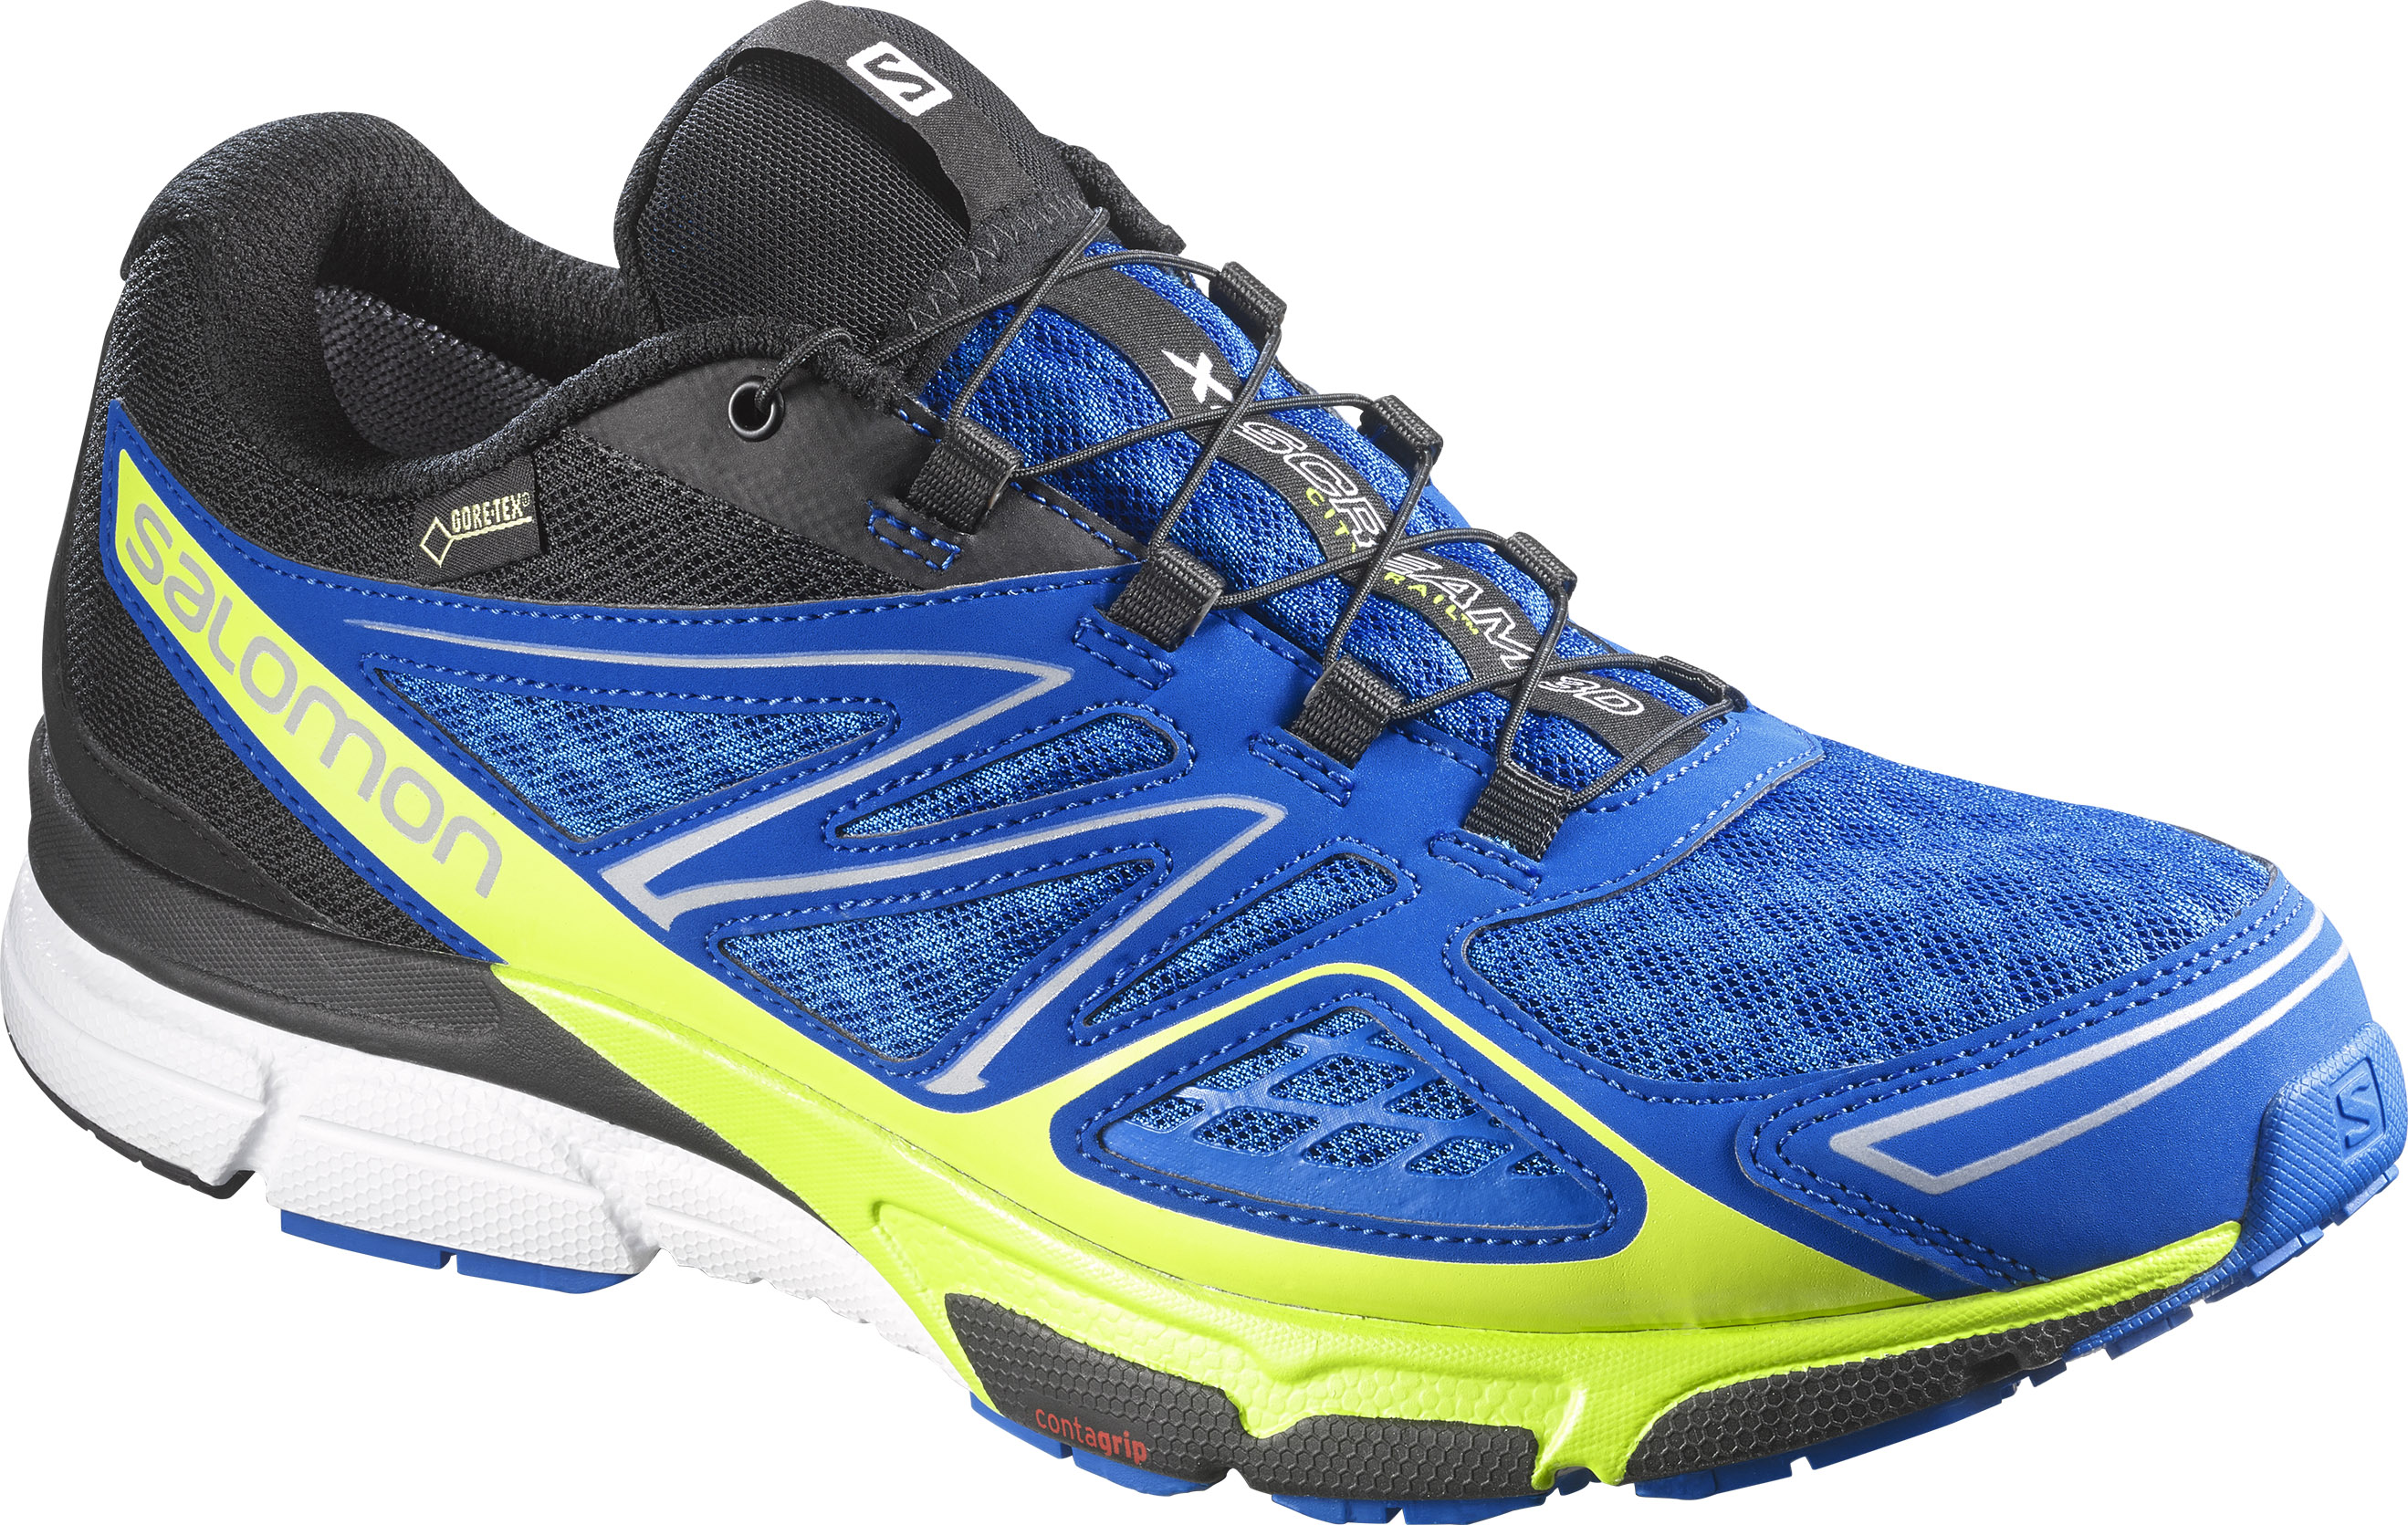 Salomon X-Scream 3D GTX 375965 42,6